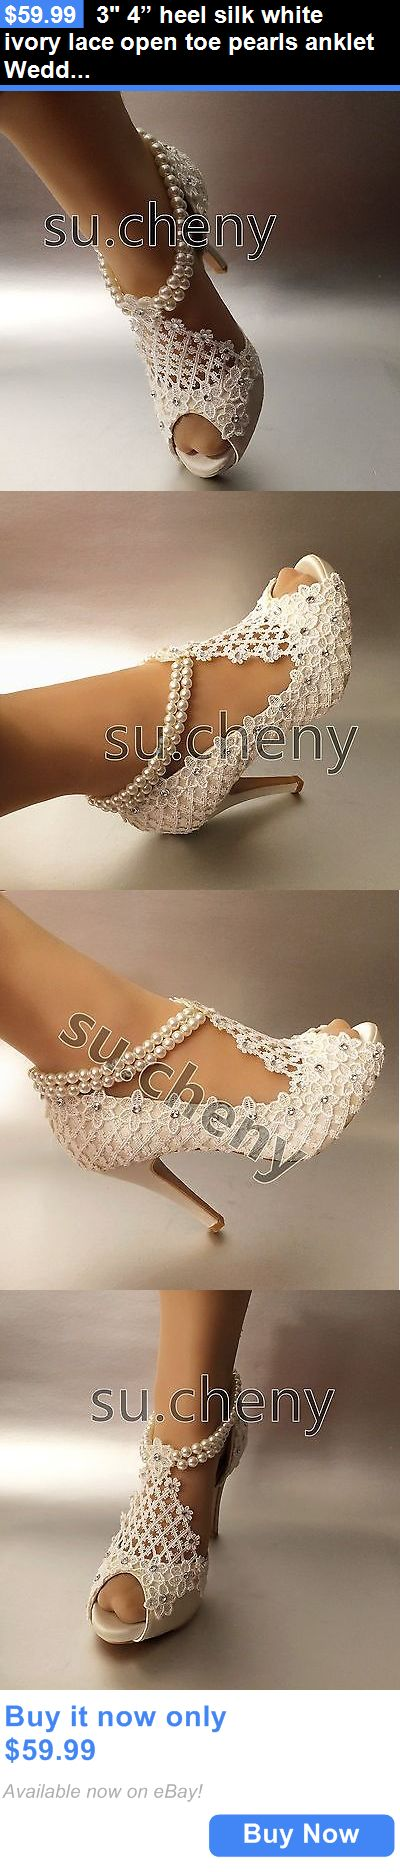 """Wedding Shoes And Bridal Shoes: 3 4"""" Heel Silk White Ivory Lace Open Toe Pearls Anklet Wedding Shoes Size 5-9.5 BUY IT NOW ONLY: $59.99"""